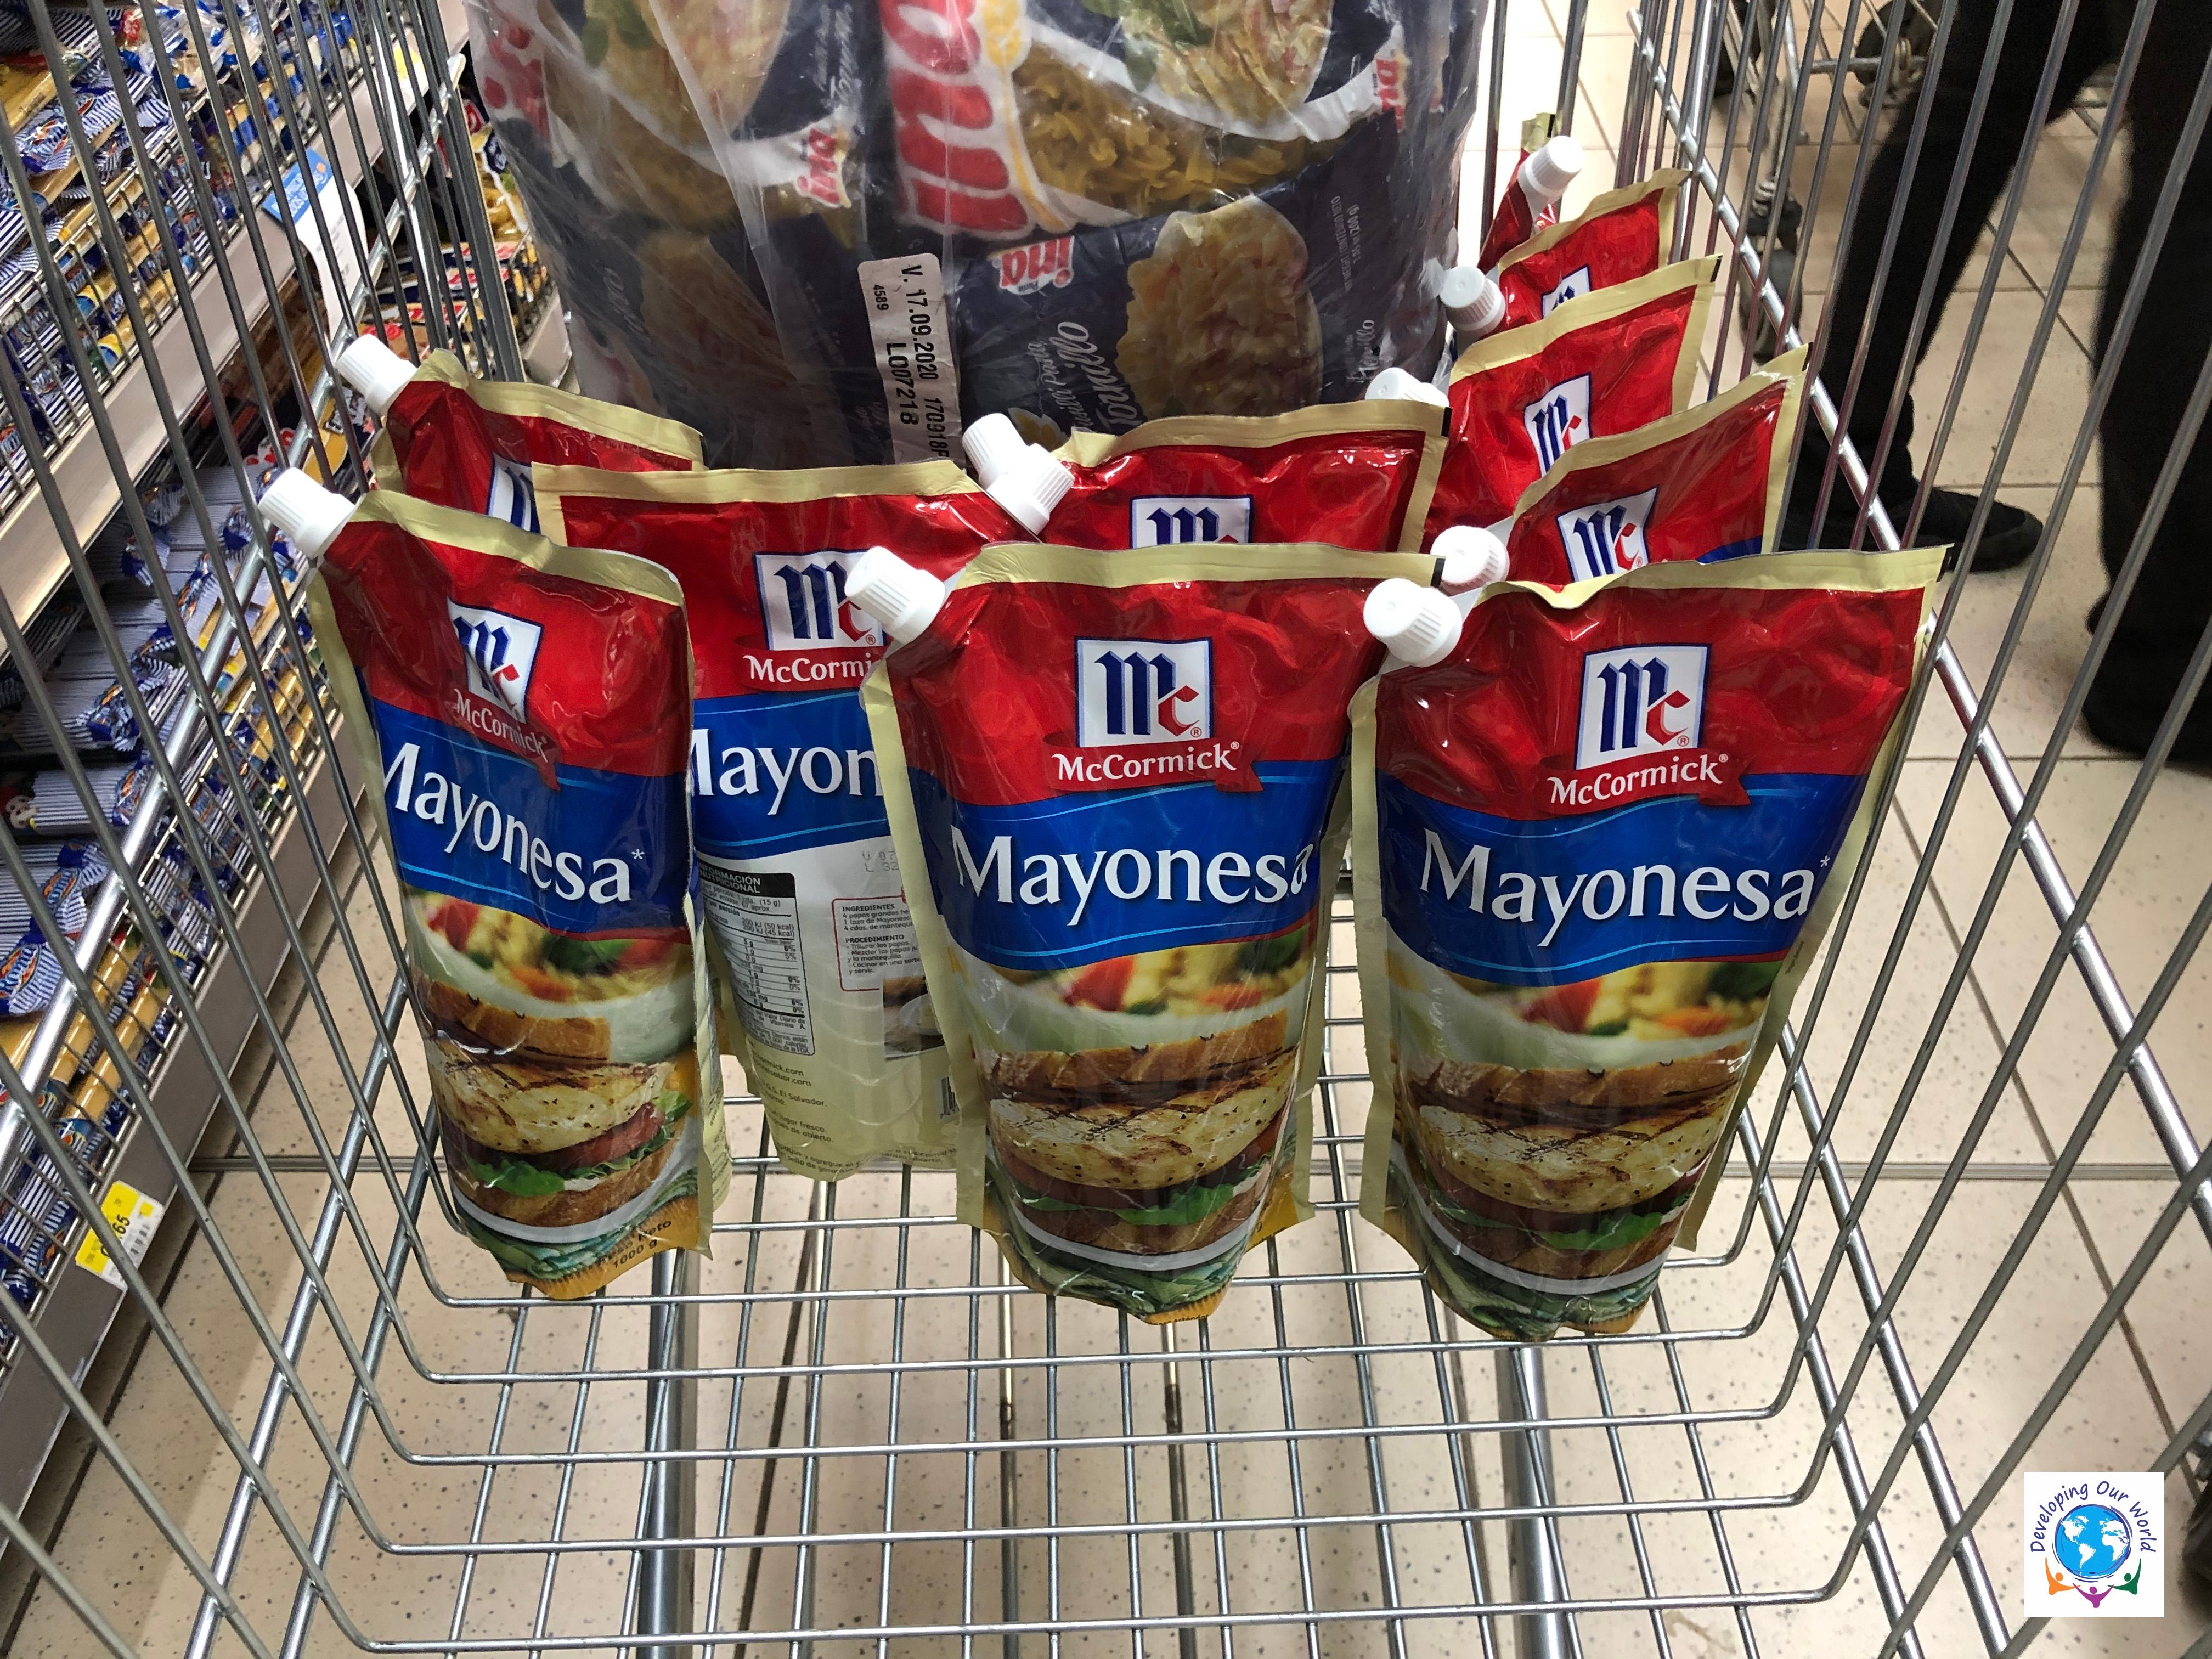 10 bags of mayonnaise